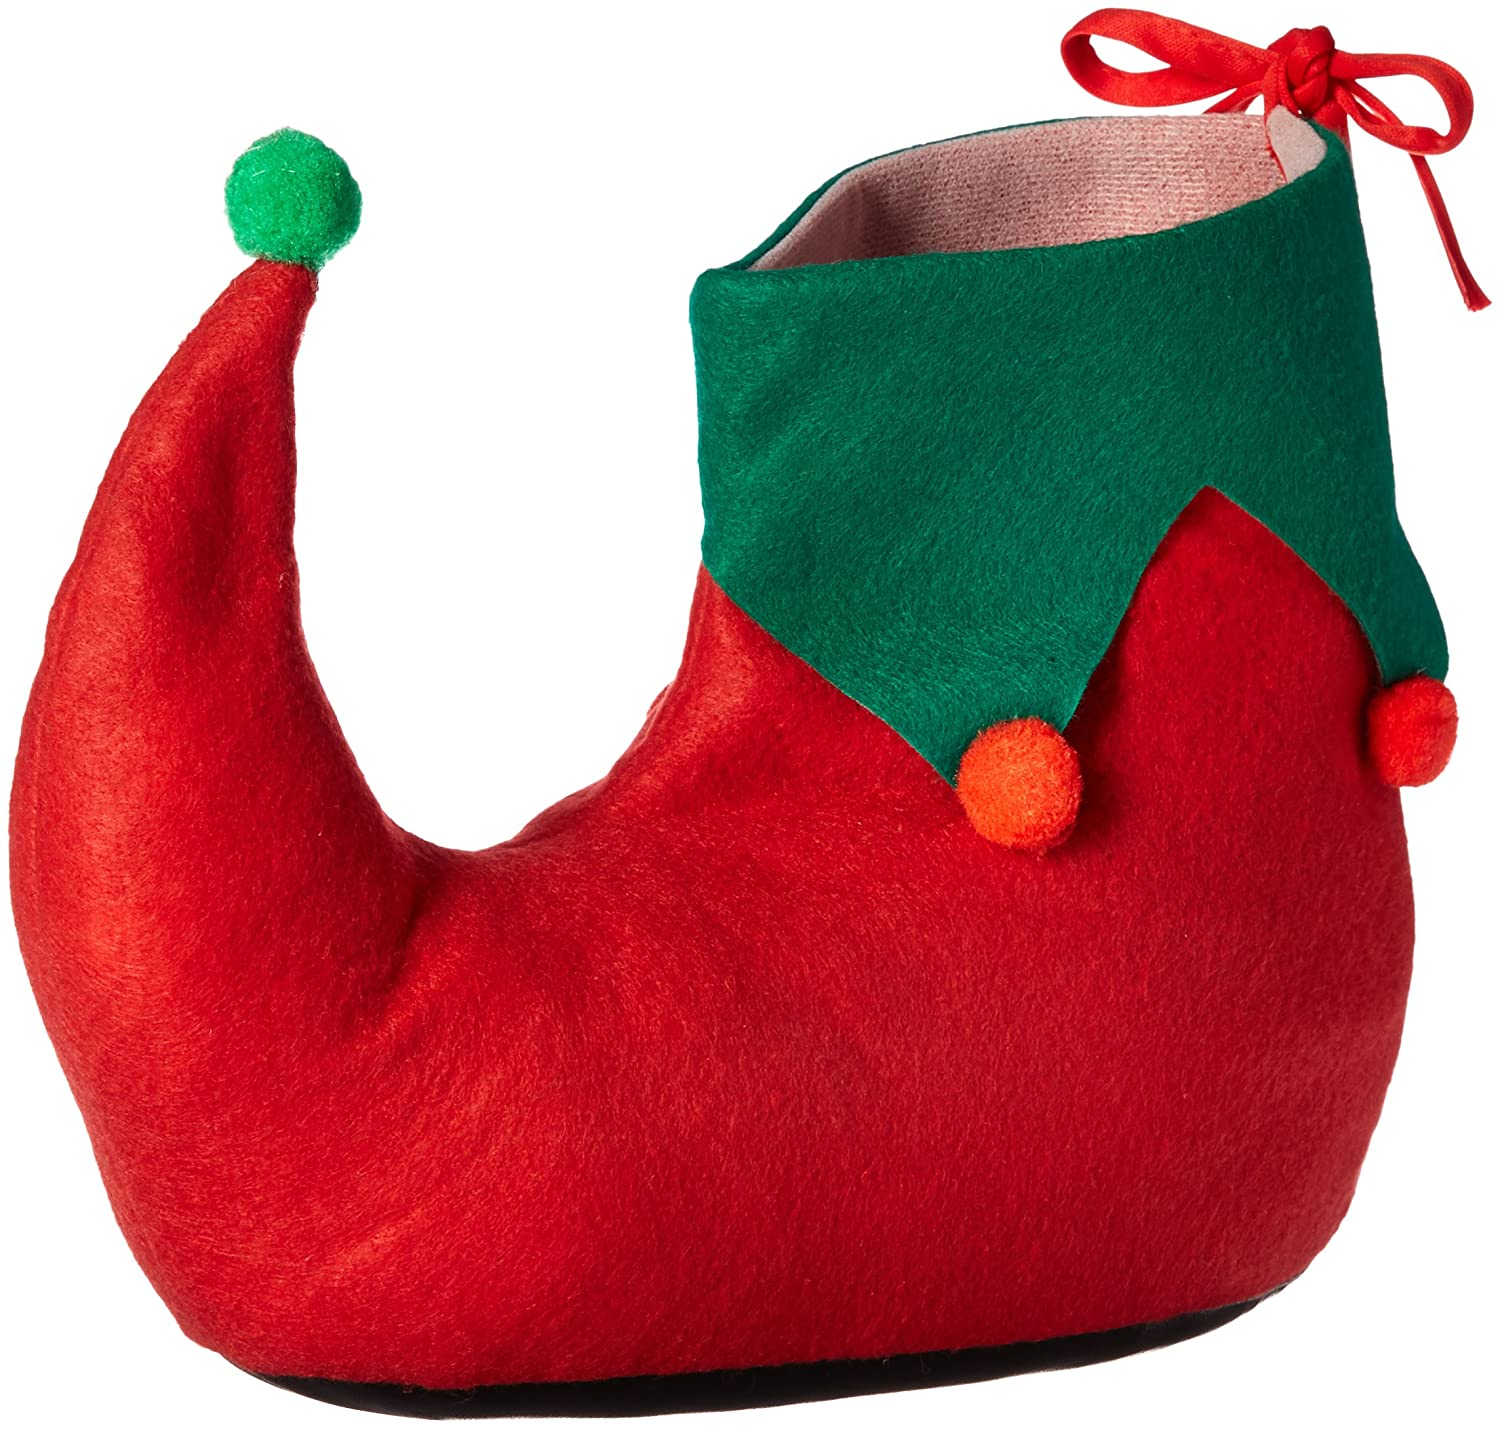 Rubie's Adult Elf Shoes Rubie' s Adult Elf Shoes Green/Red One Size Rubies Costumes - Apparel